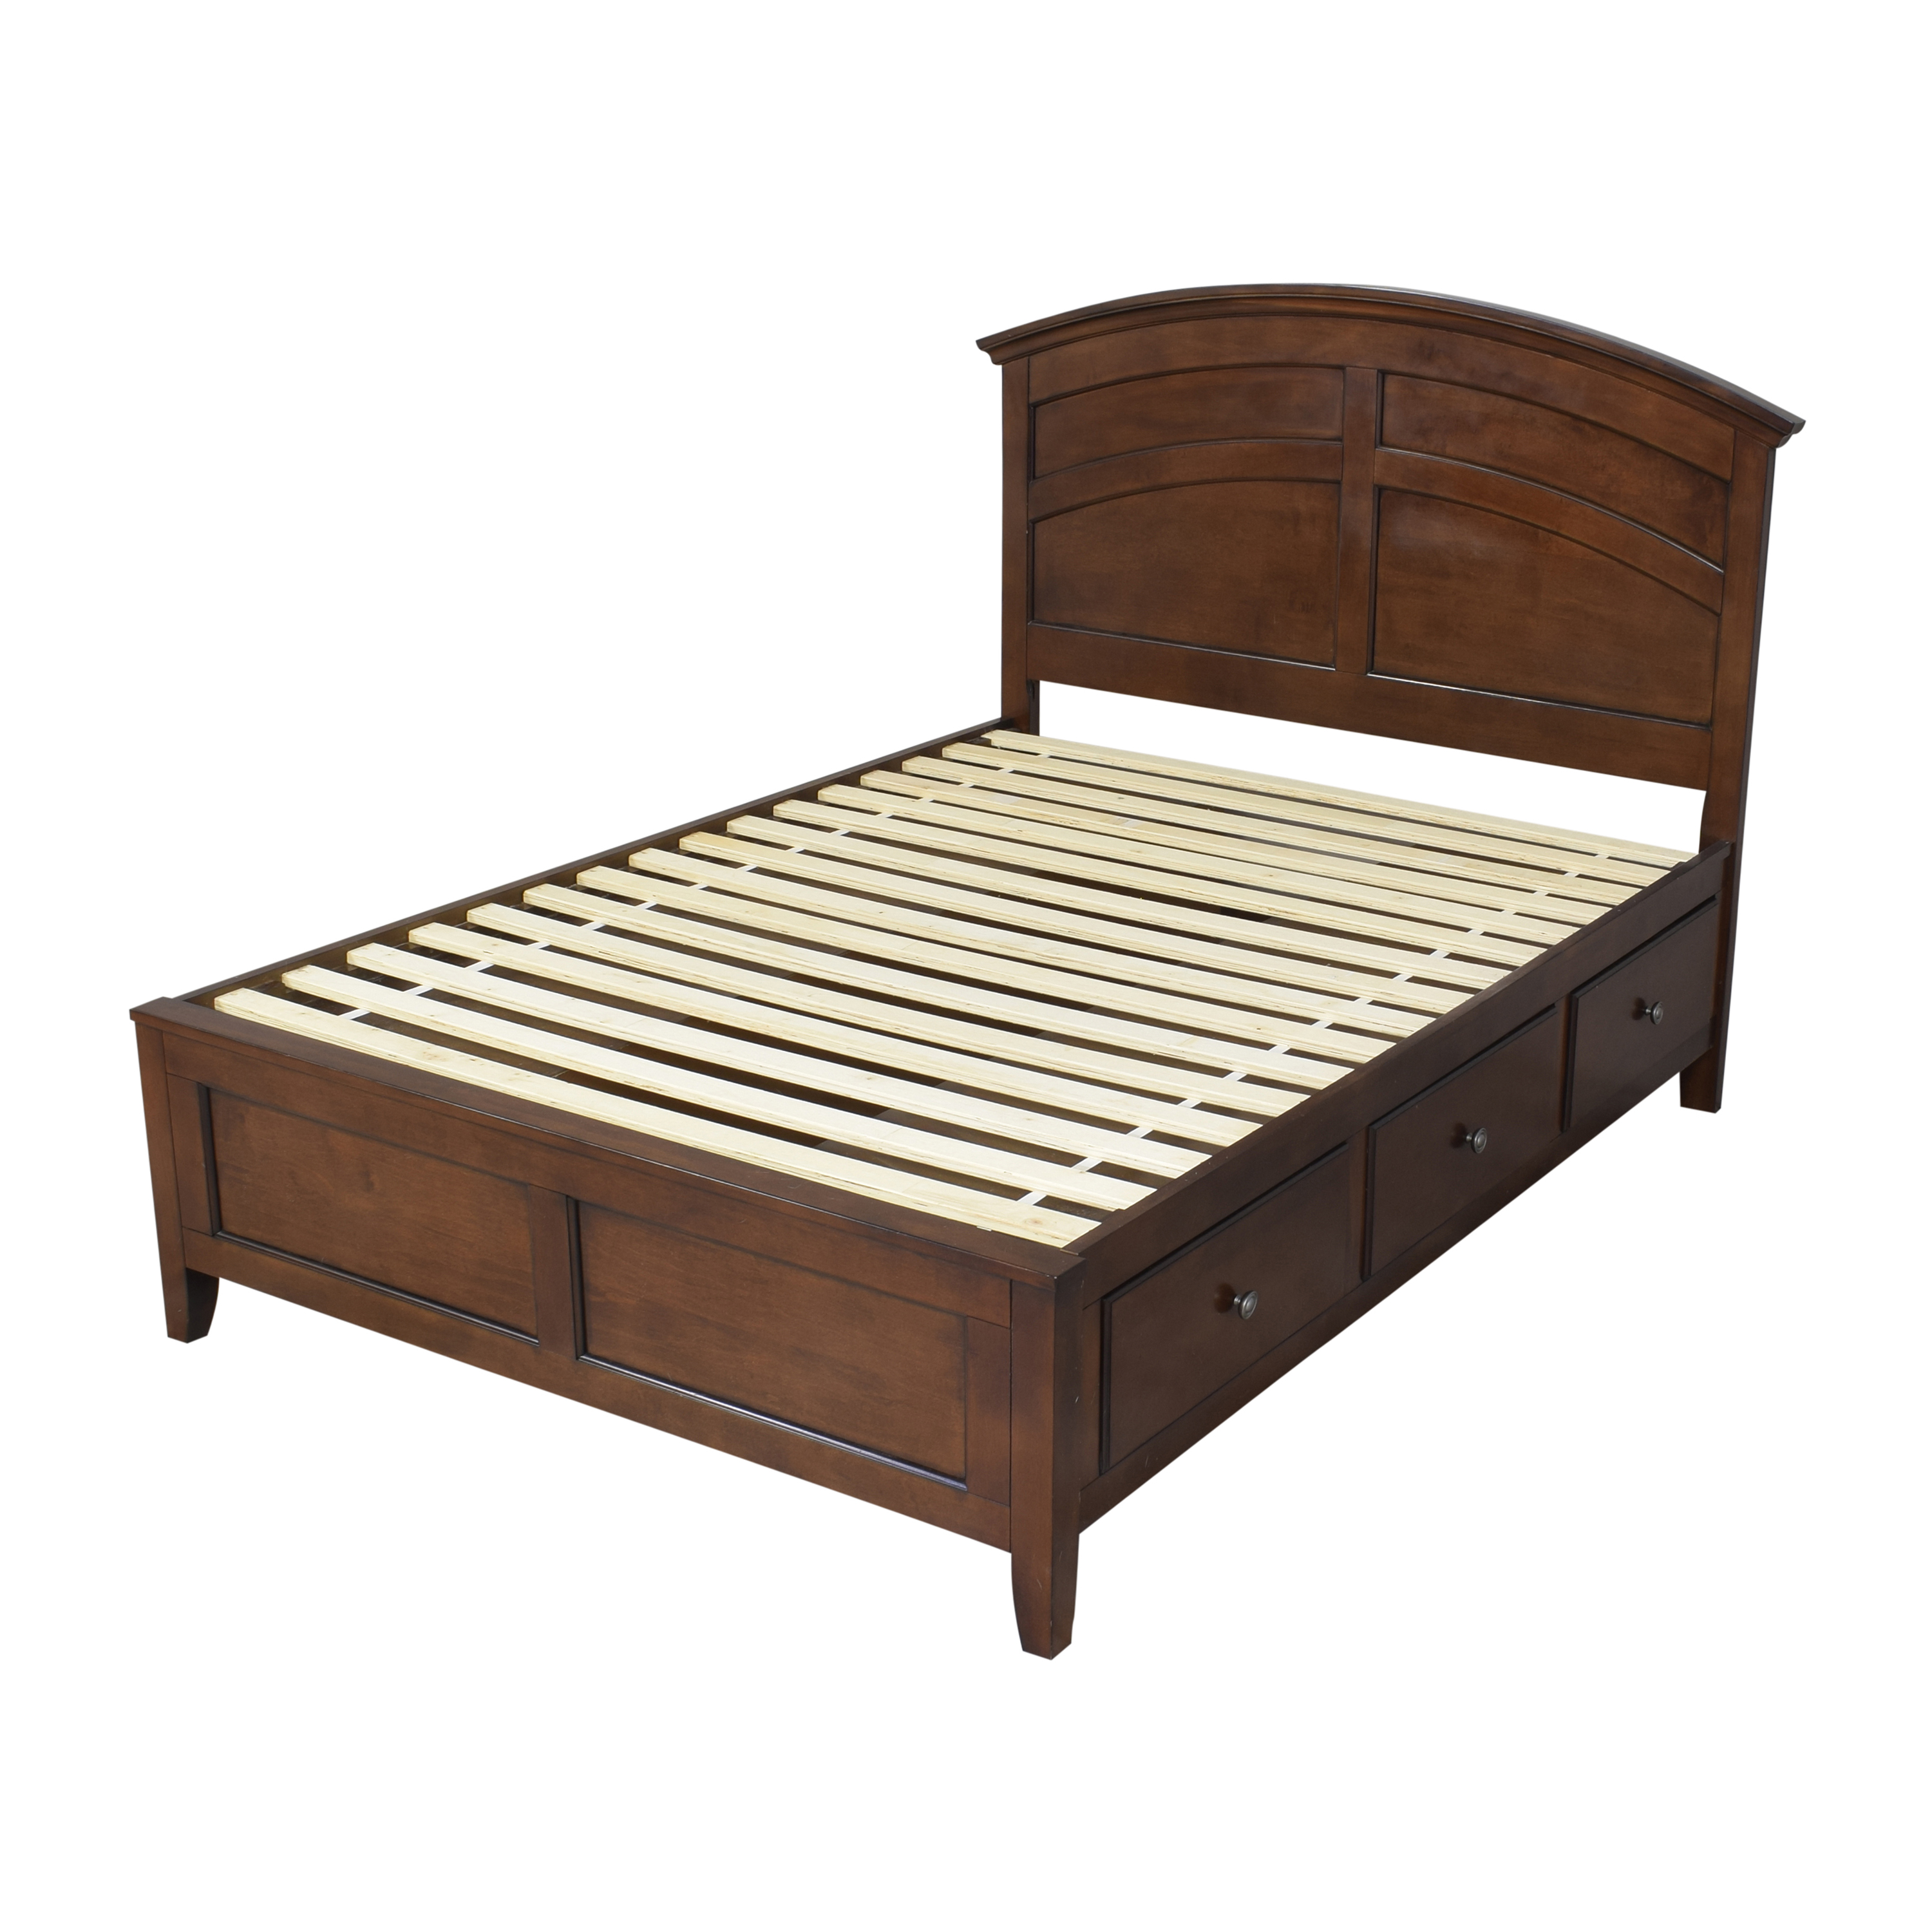 Raymour & Flanigan Raymour & Flanigan Kylie Platform Storage Full Bed coupon